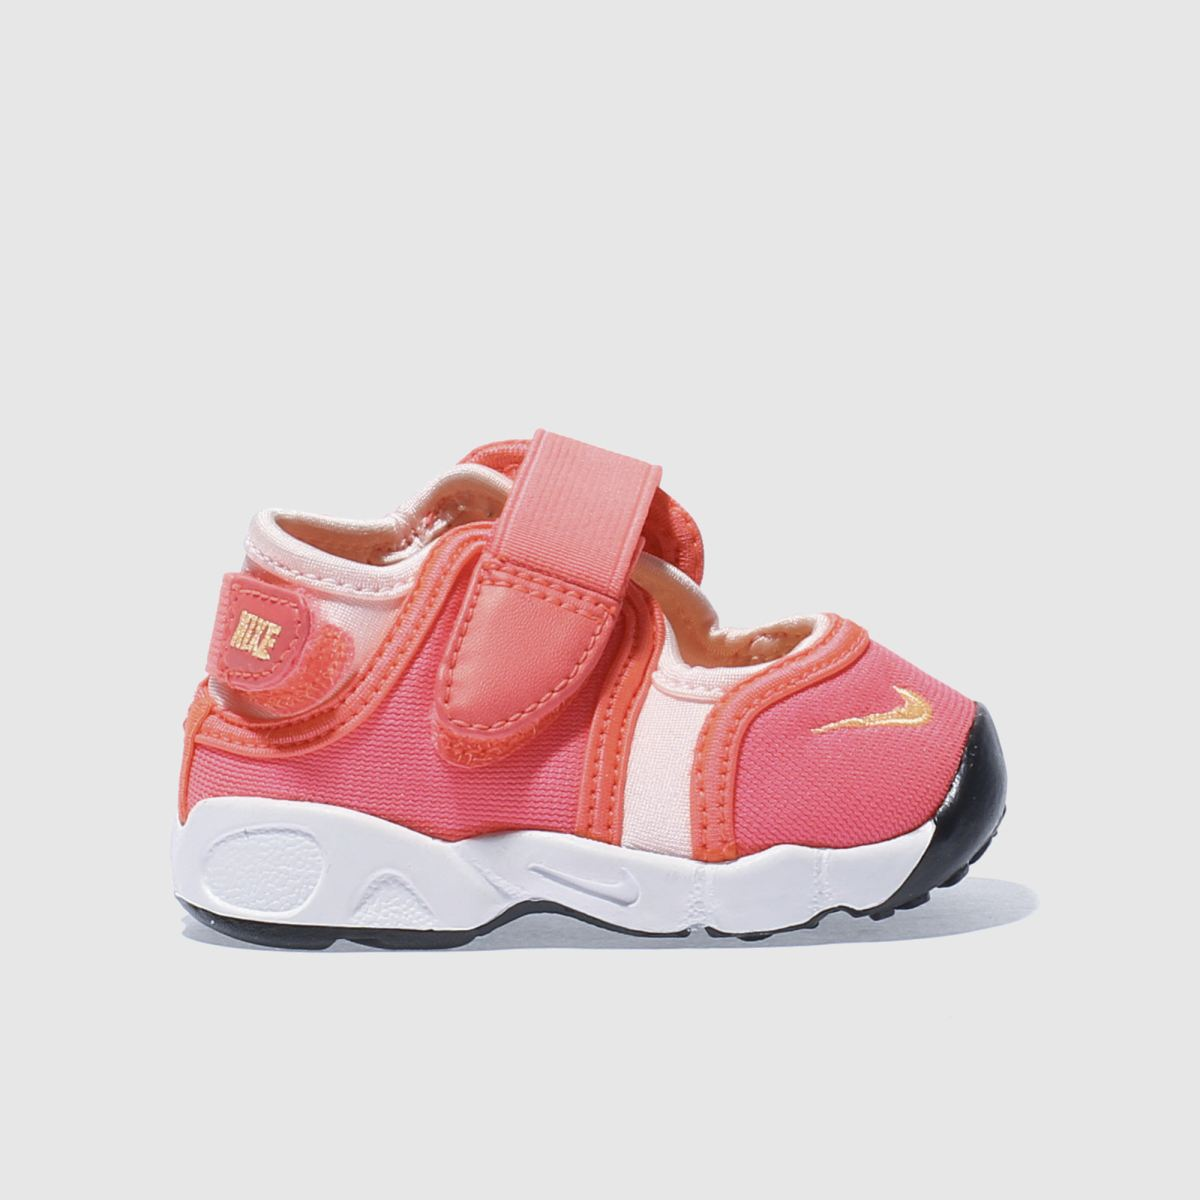 nike pink little rift Girls Toddler Trainers